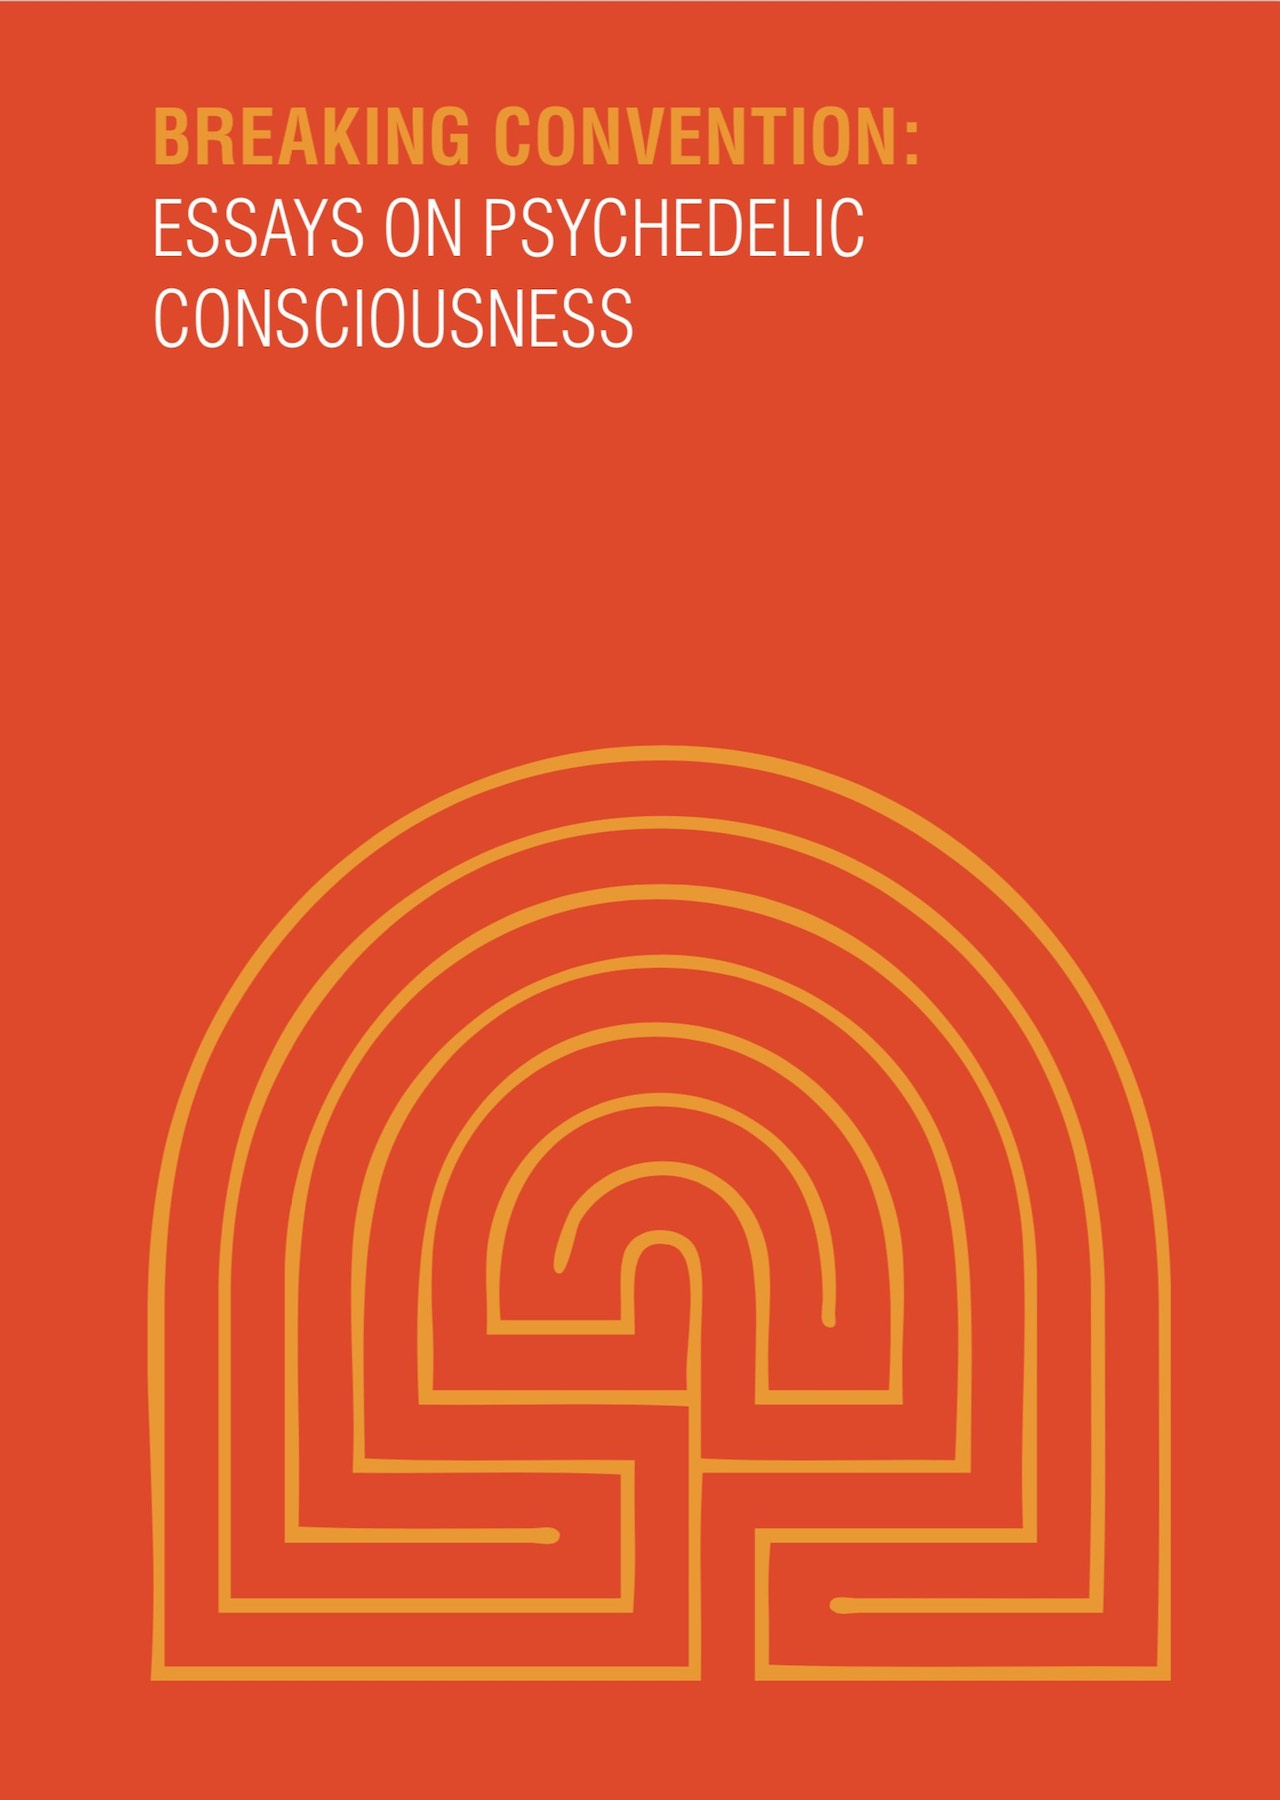 Breaking Convention: Essays on Psychedelic Consciousness Book Cover